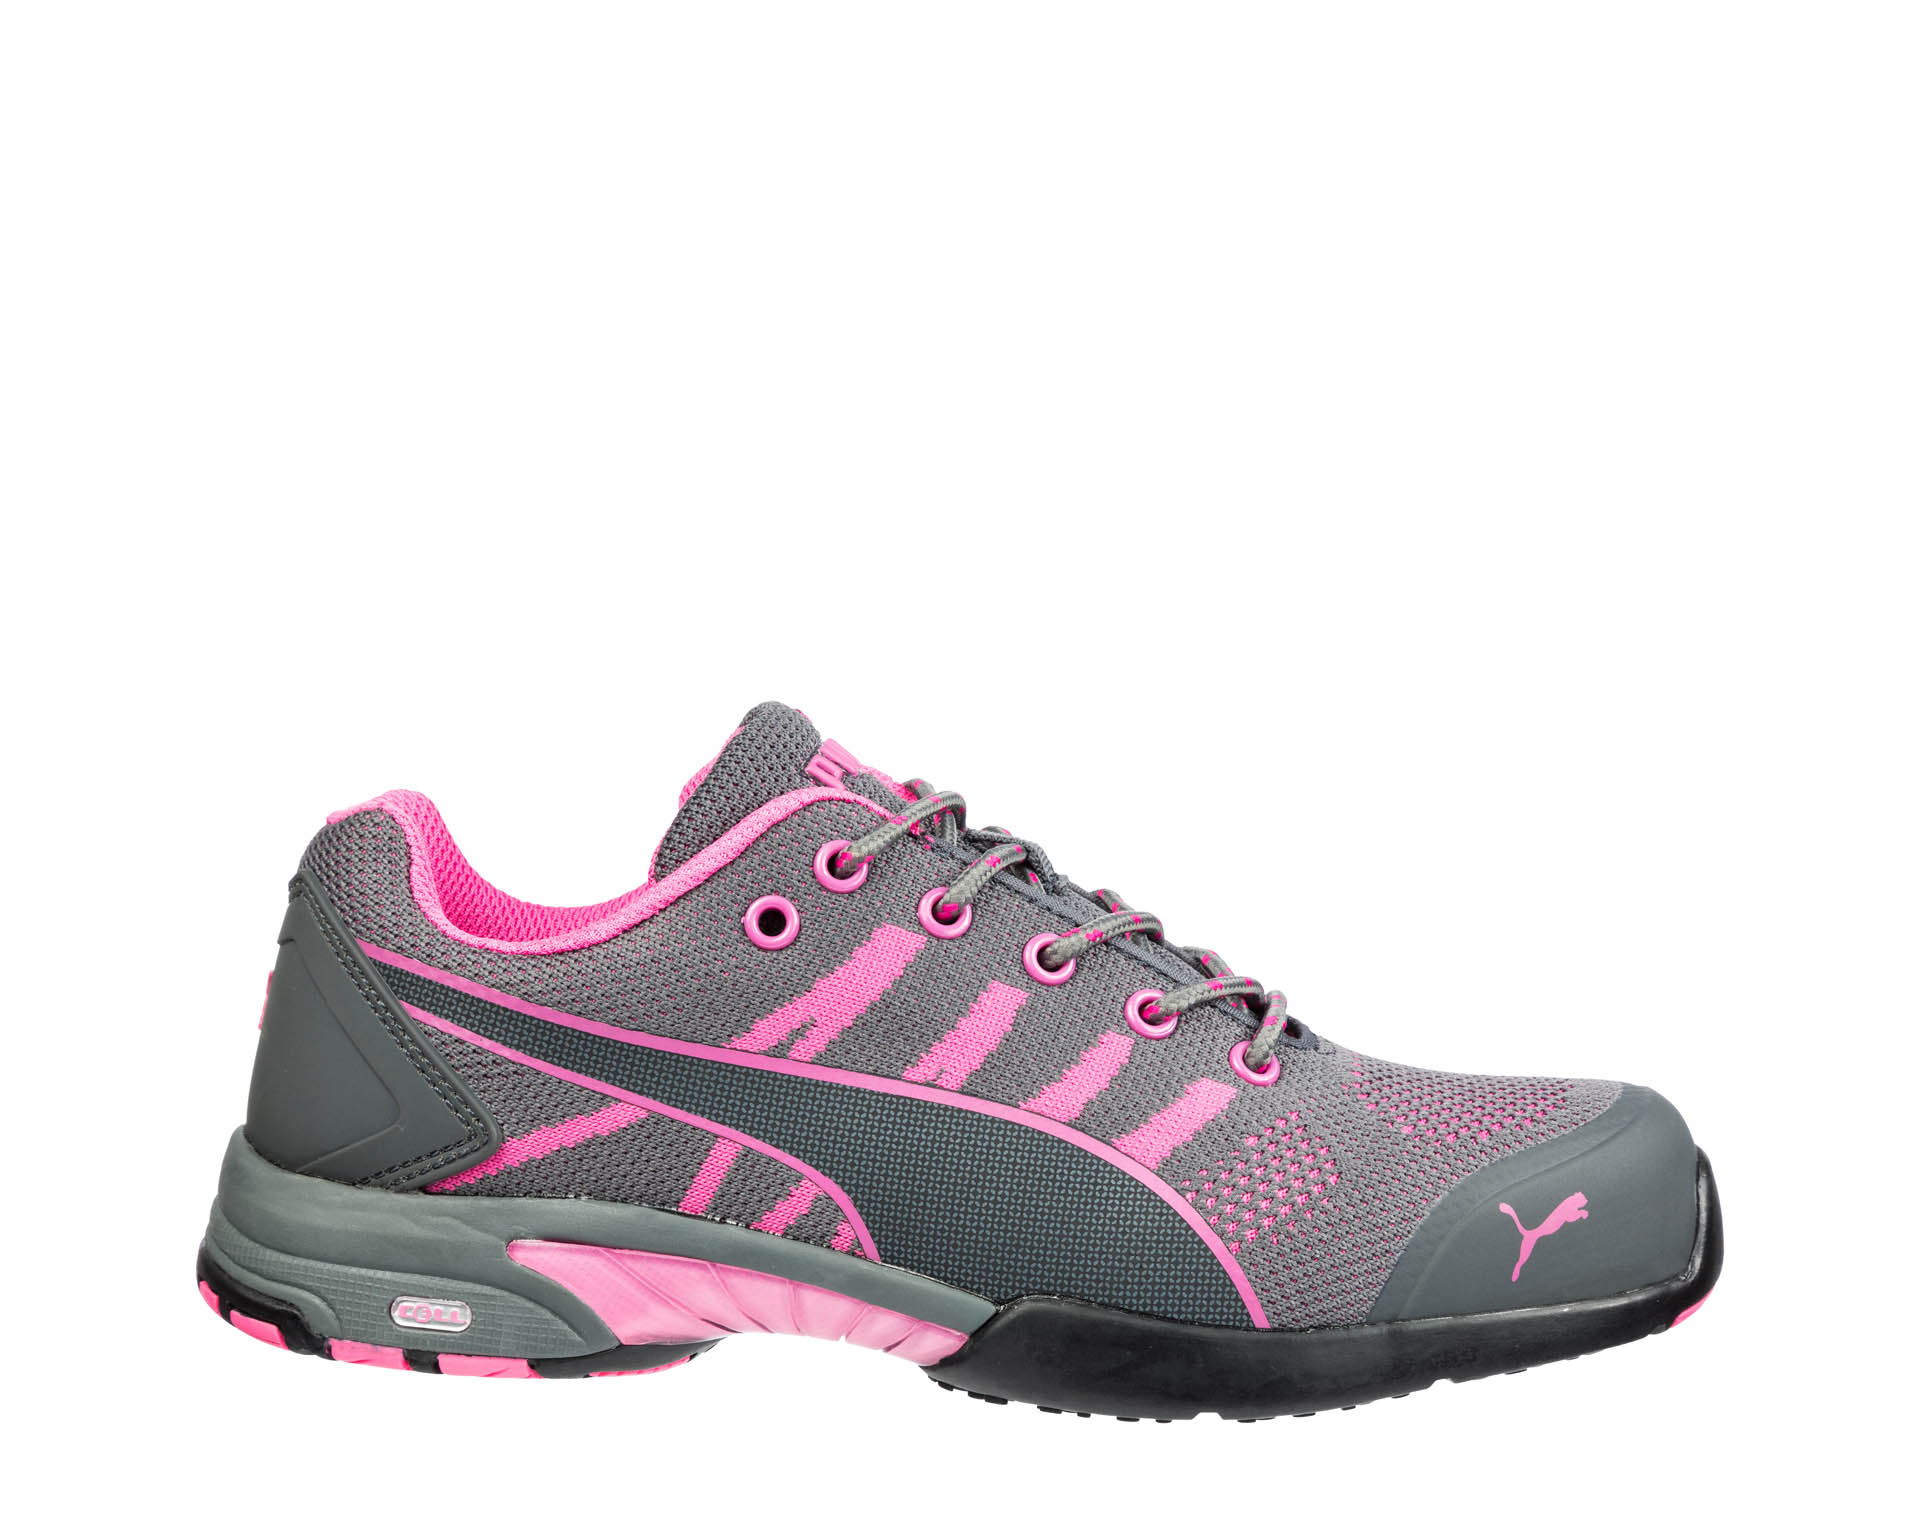 Puma Safety Celerity Knit Pink Low Wns S1 Hro Src Puma Safety English